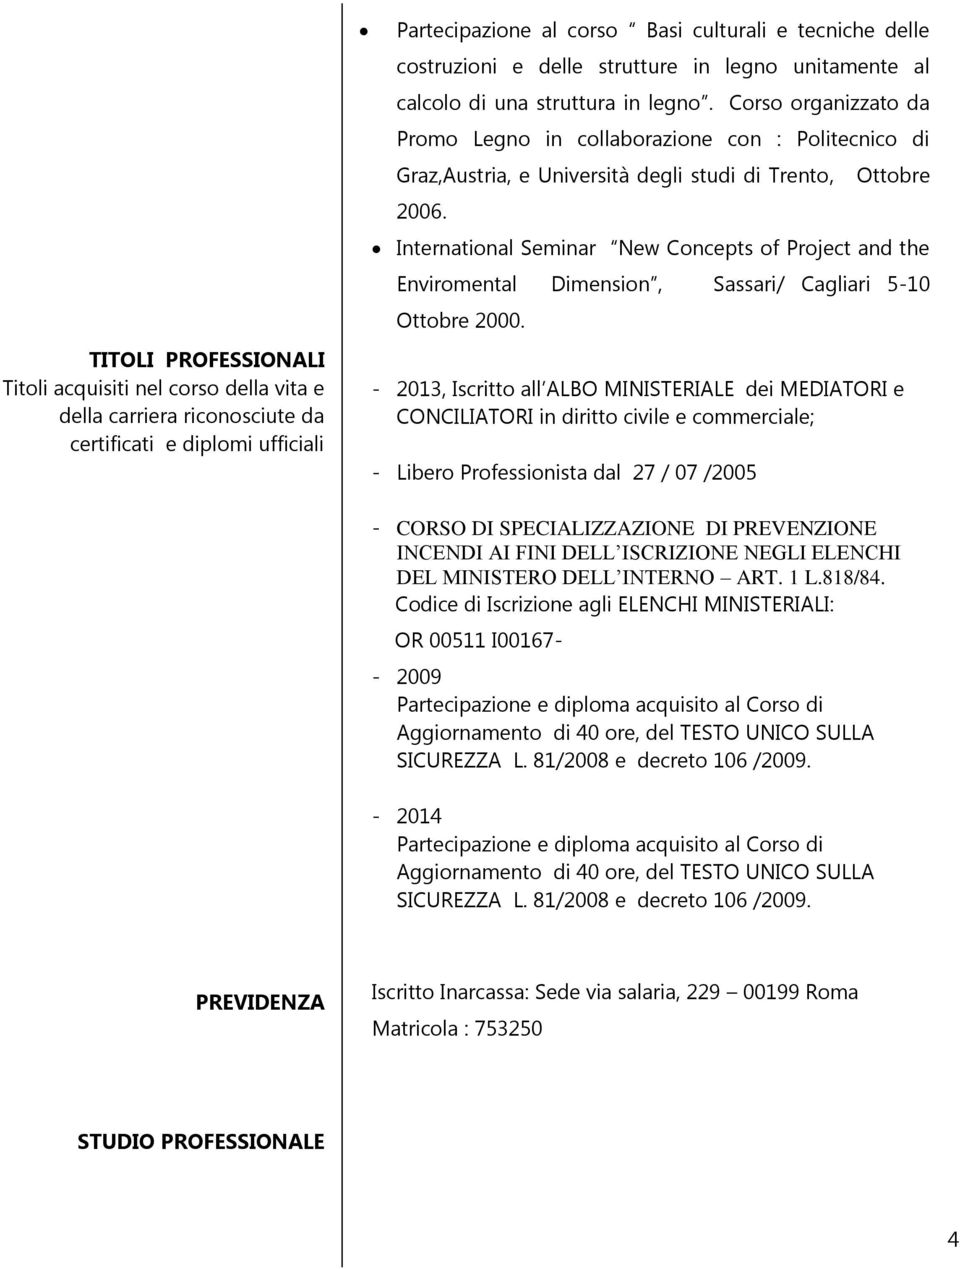 - 2013, Iscritto all ALBO MINISTERIALE dei MEDIATORI e CONCILIATORI in diritto civile e commerciale; - Libero Professionista dal 27 / 07 /2005 Ottobre International Seminar New Concepts of Project